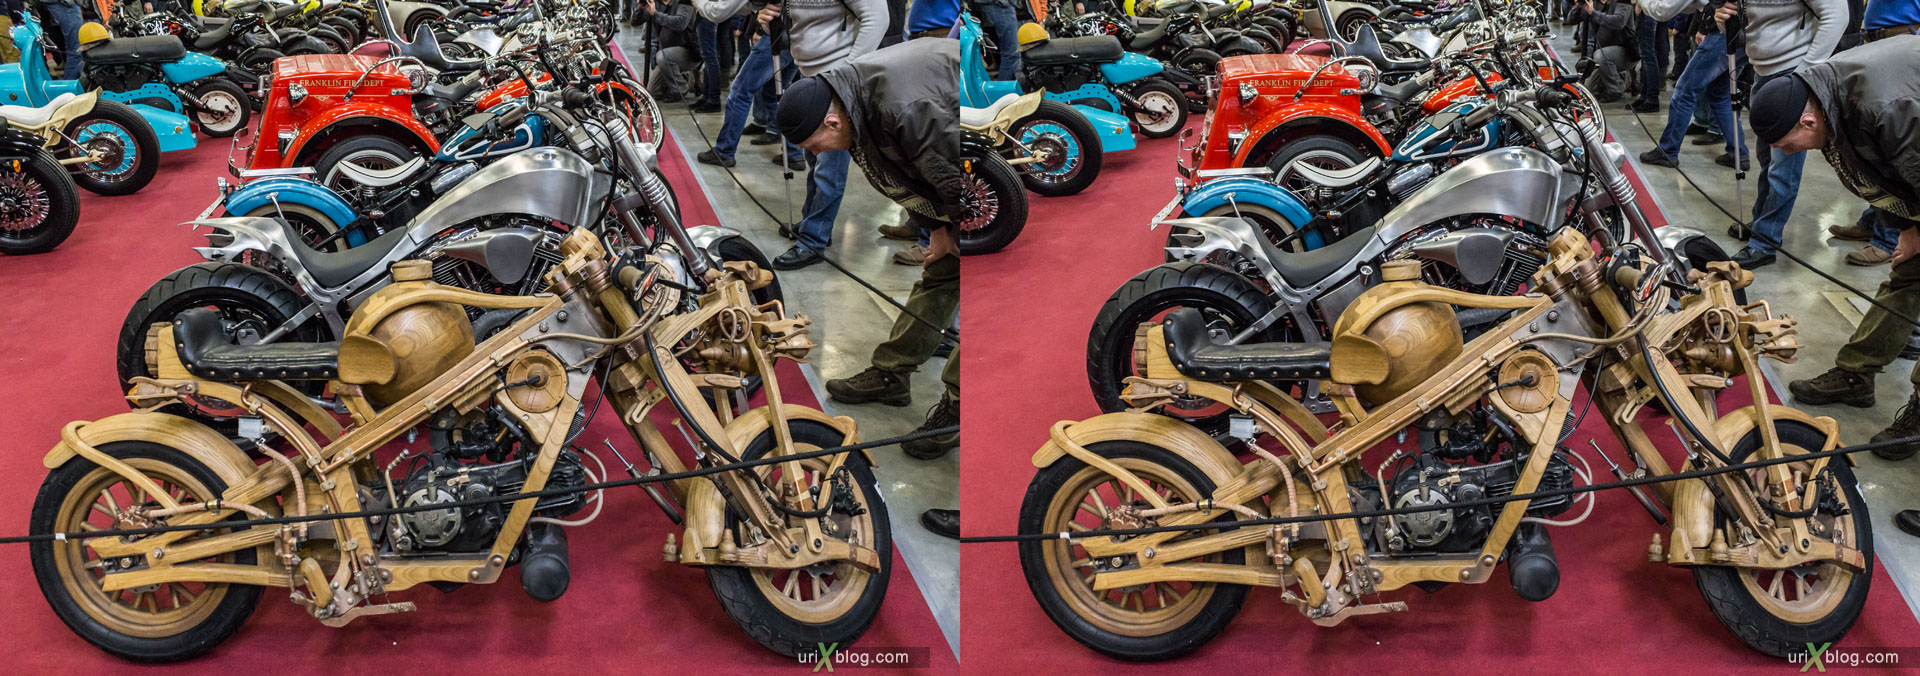 Moto park, exhibition, Crocus Expo, Moscow, Russia, 3D, stereo pair, cross-eyed, crossview, cross view stereo pair, stereoscopic, 2015